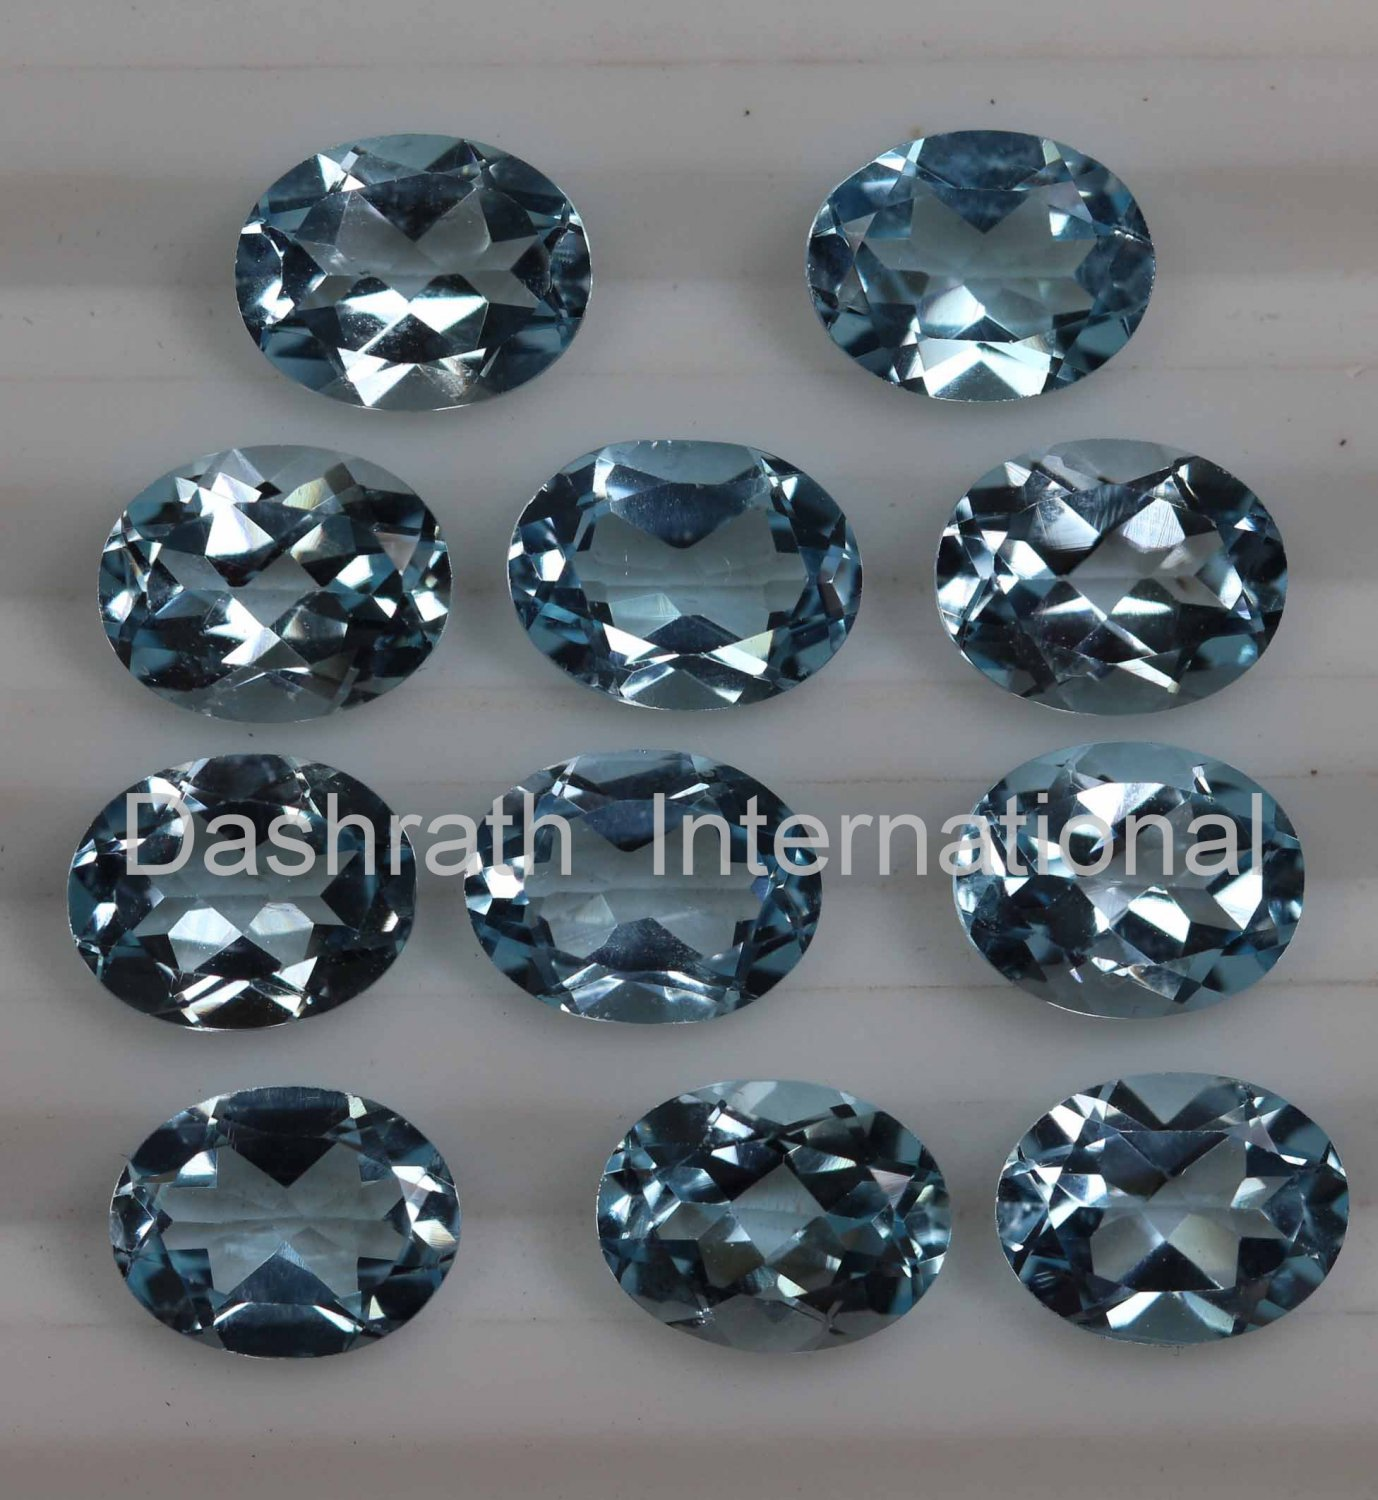 4x3mm Natural Sky Blue Topaz Faceted Cut Oval  25 Pieces Lot Blue Color  Top Quality Loose Gemstone